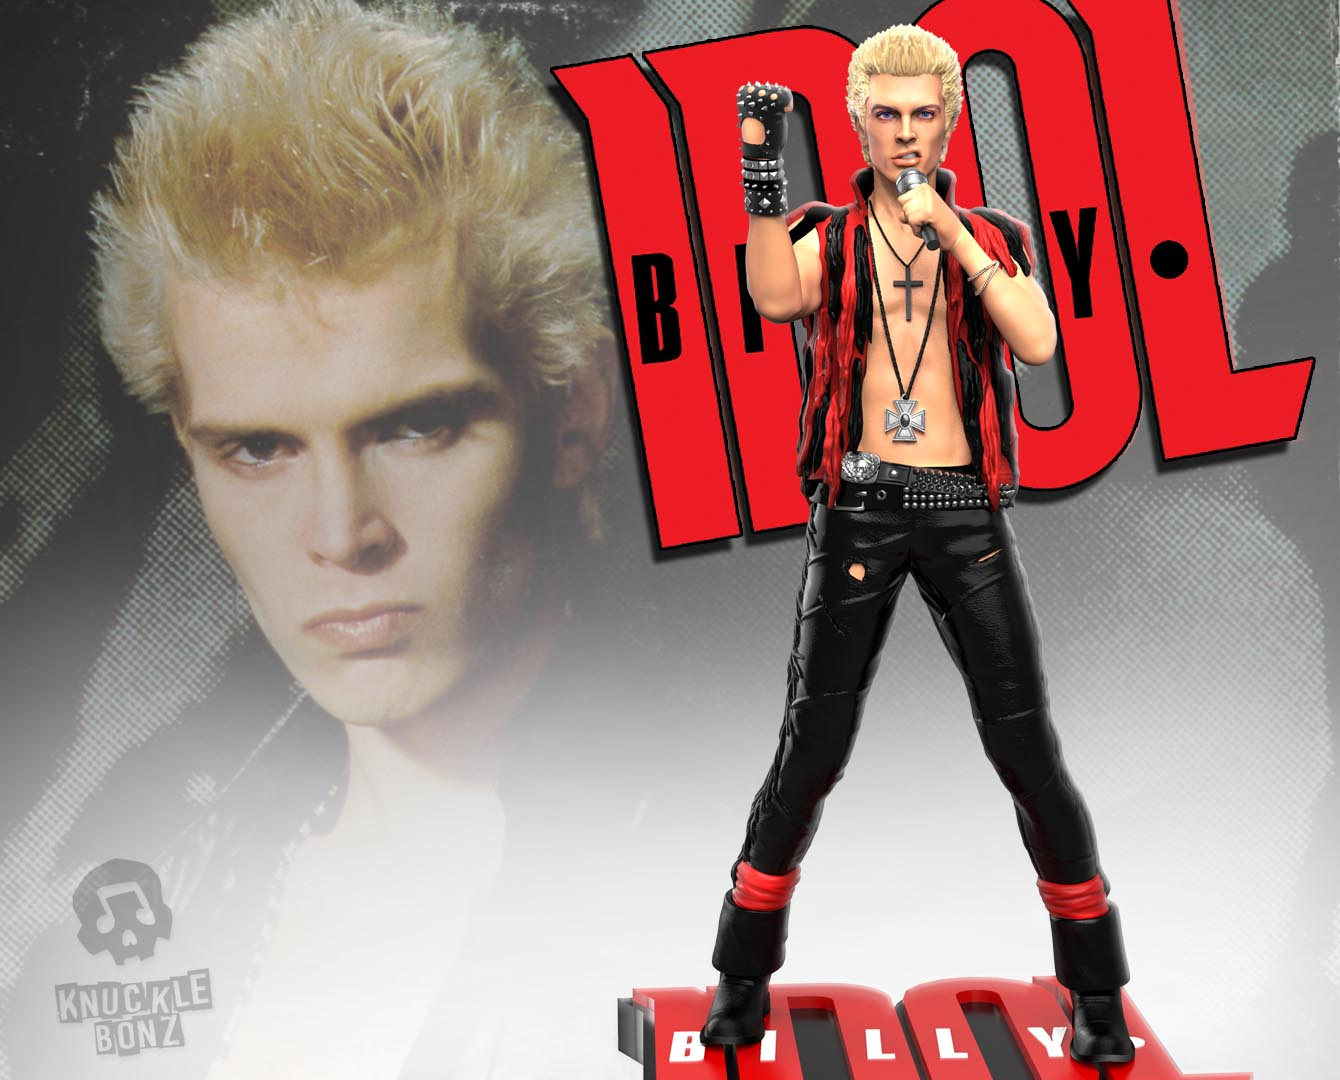 Billy Idol Rock Iconz Statue Knucklebonz Inc